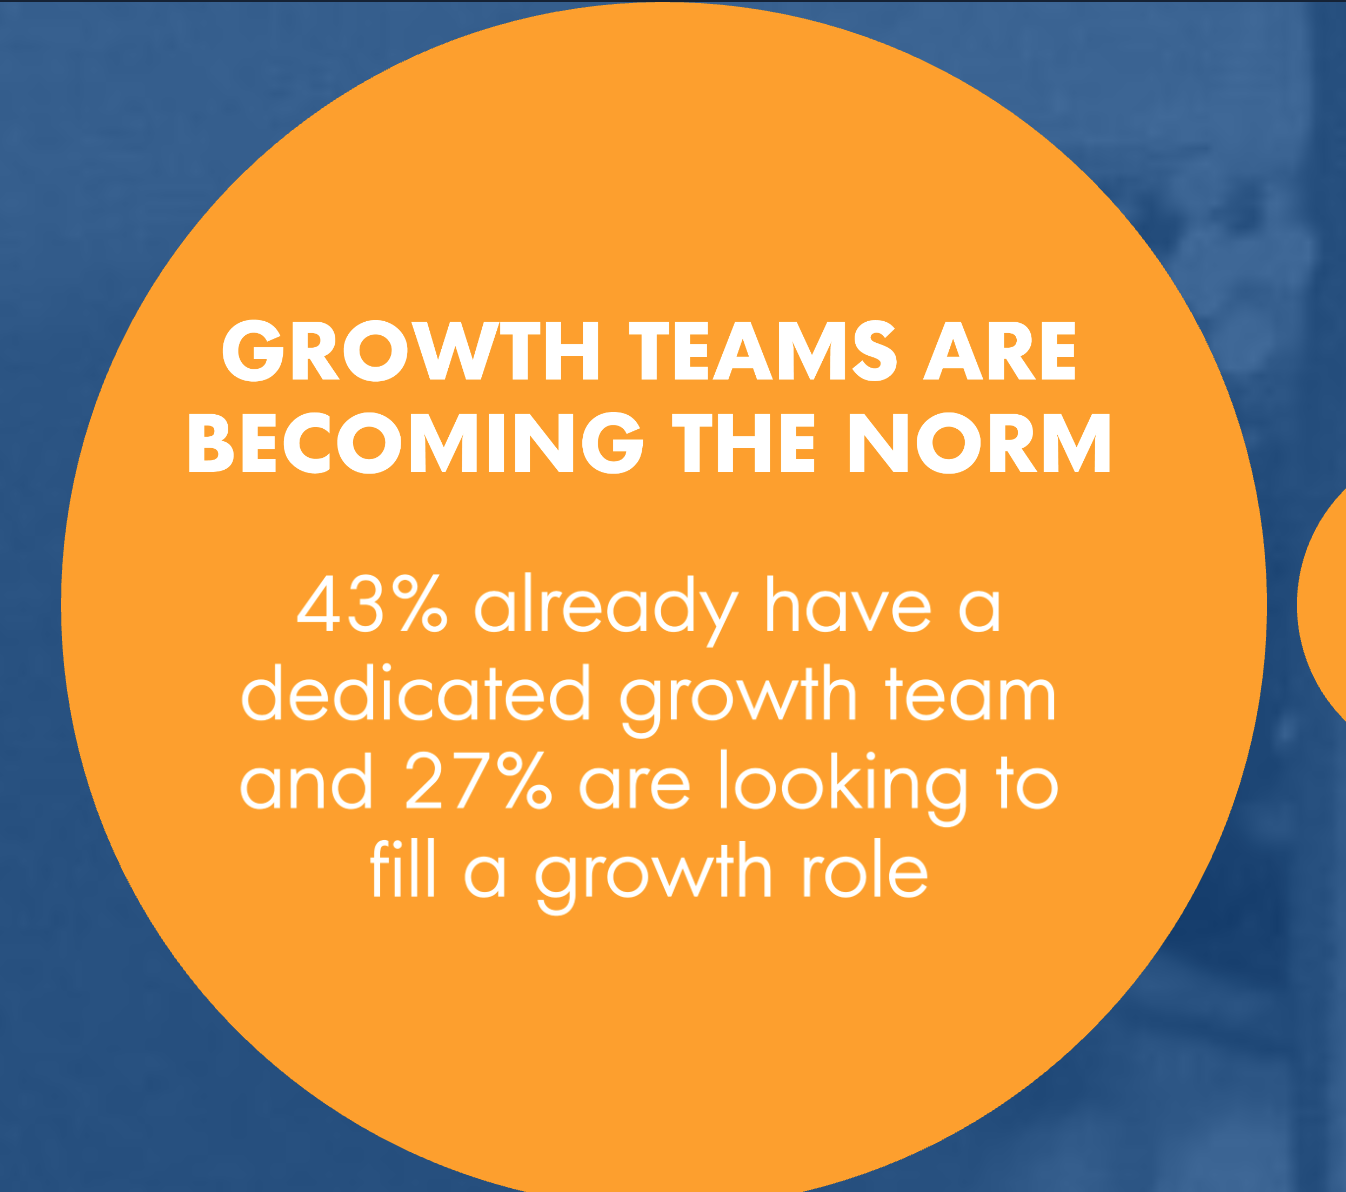 what is the importance of growth product manager?